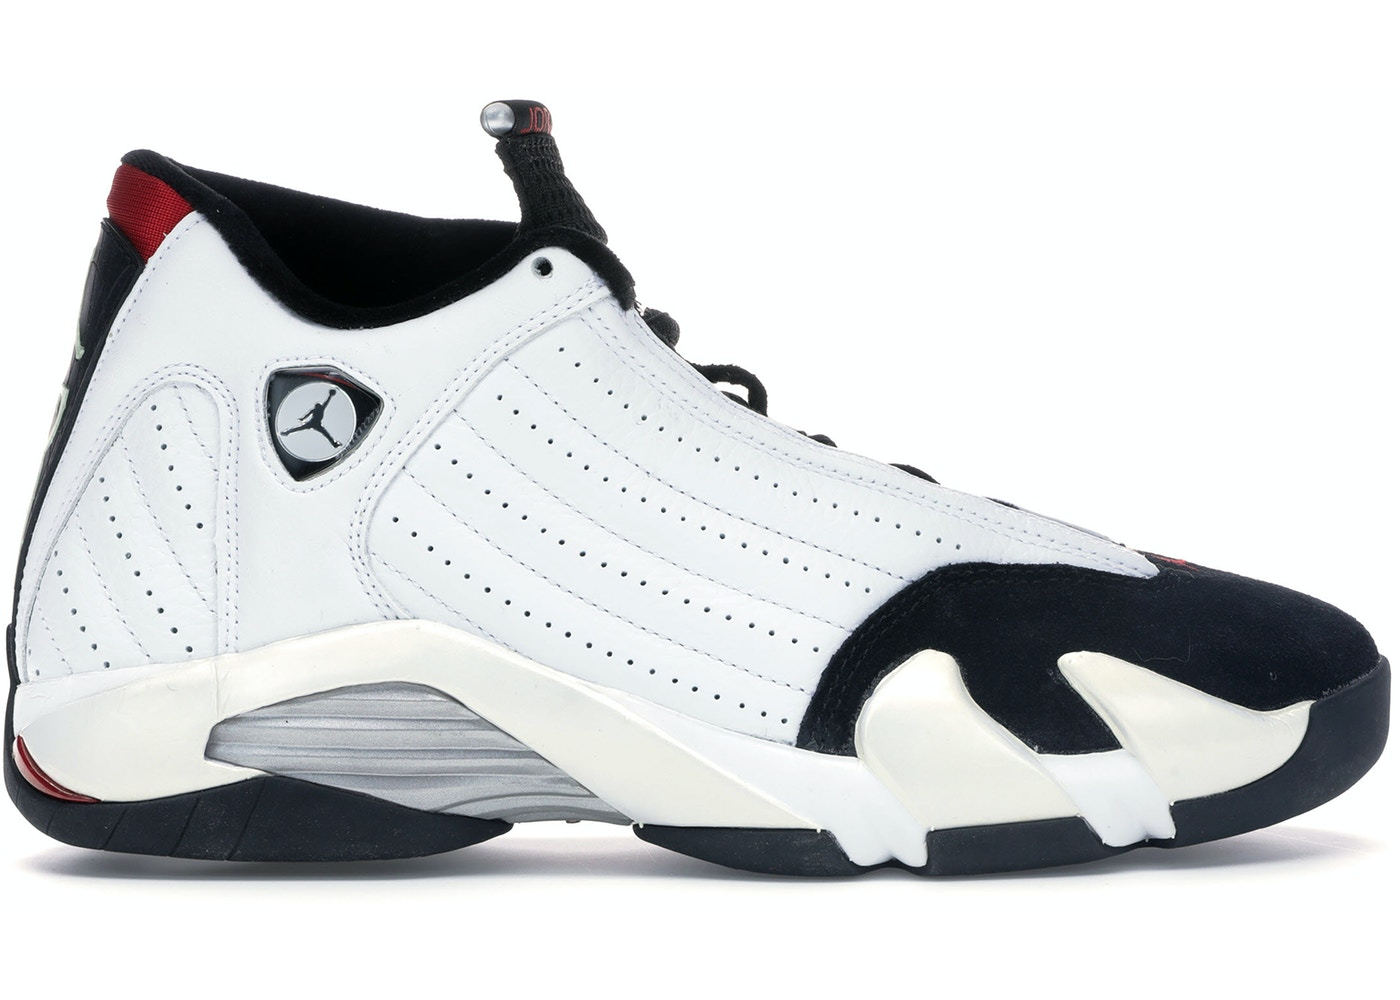 outlet store fed14 37533 Air Jordan 14 Size 14 Shoes - Average Sale Price